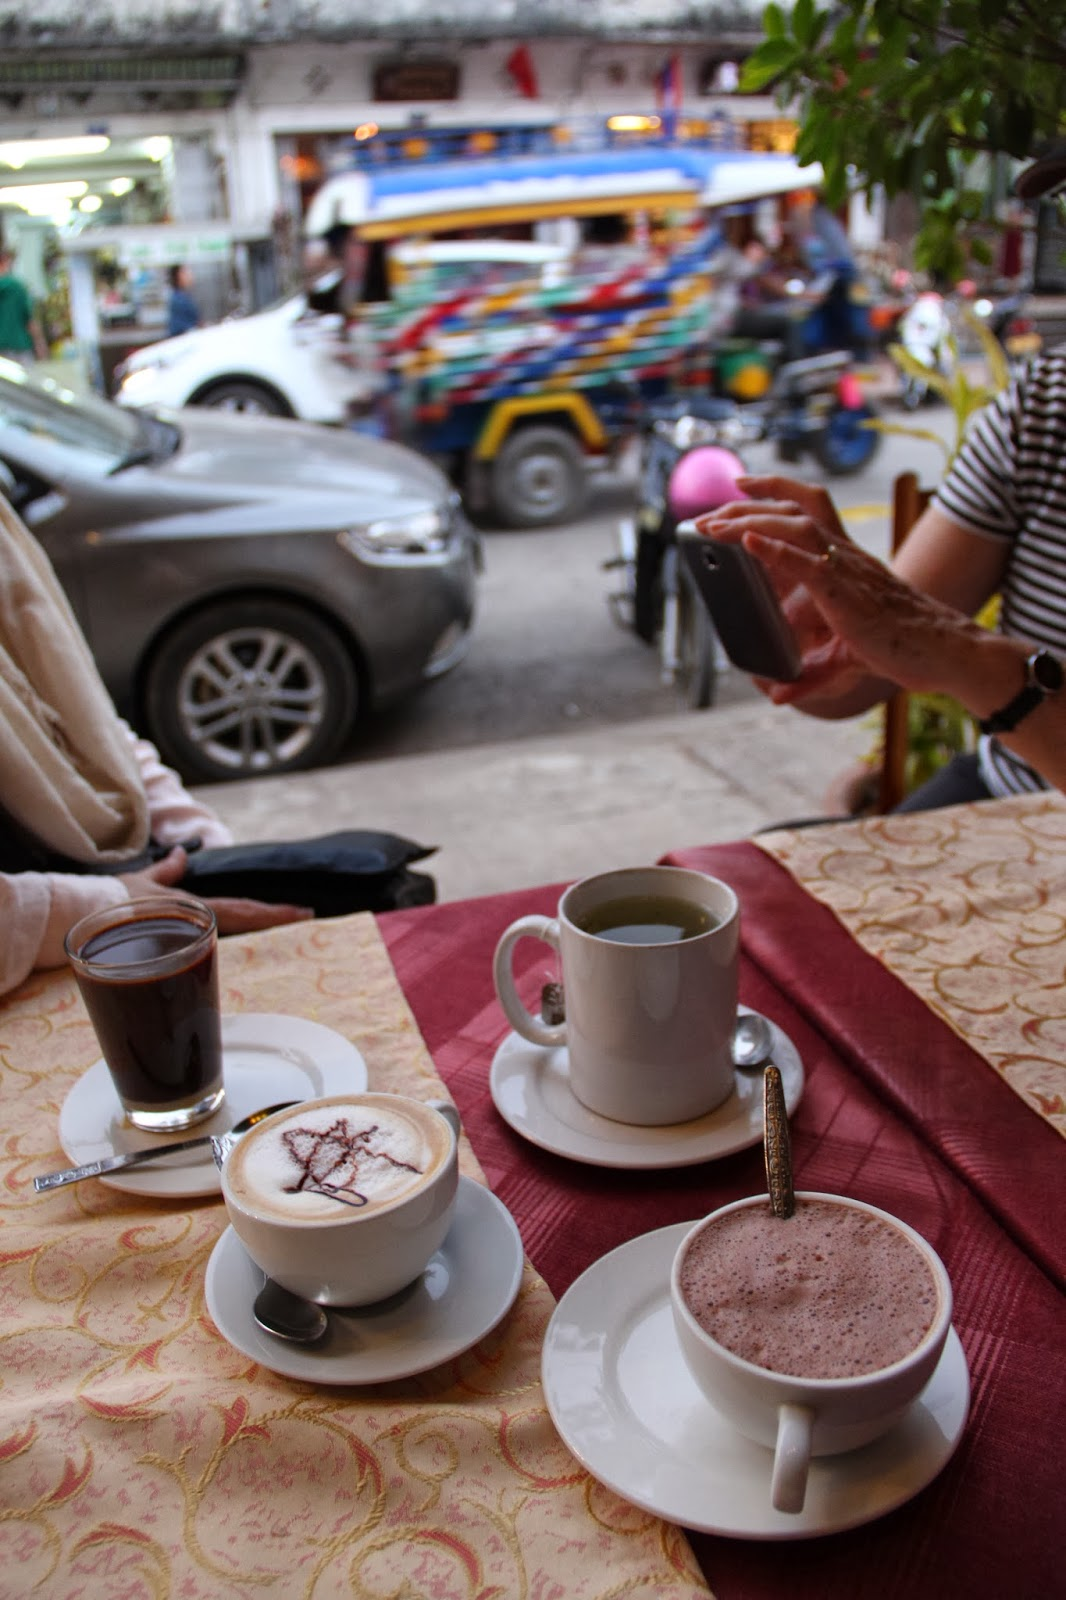 Lao Coffee and assorted fripperies in Luang Prabang.